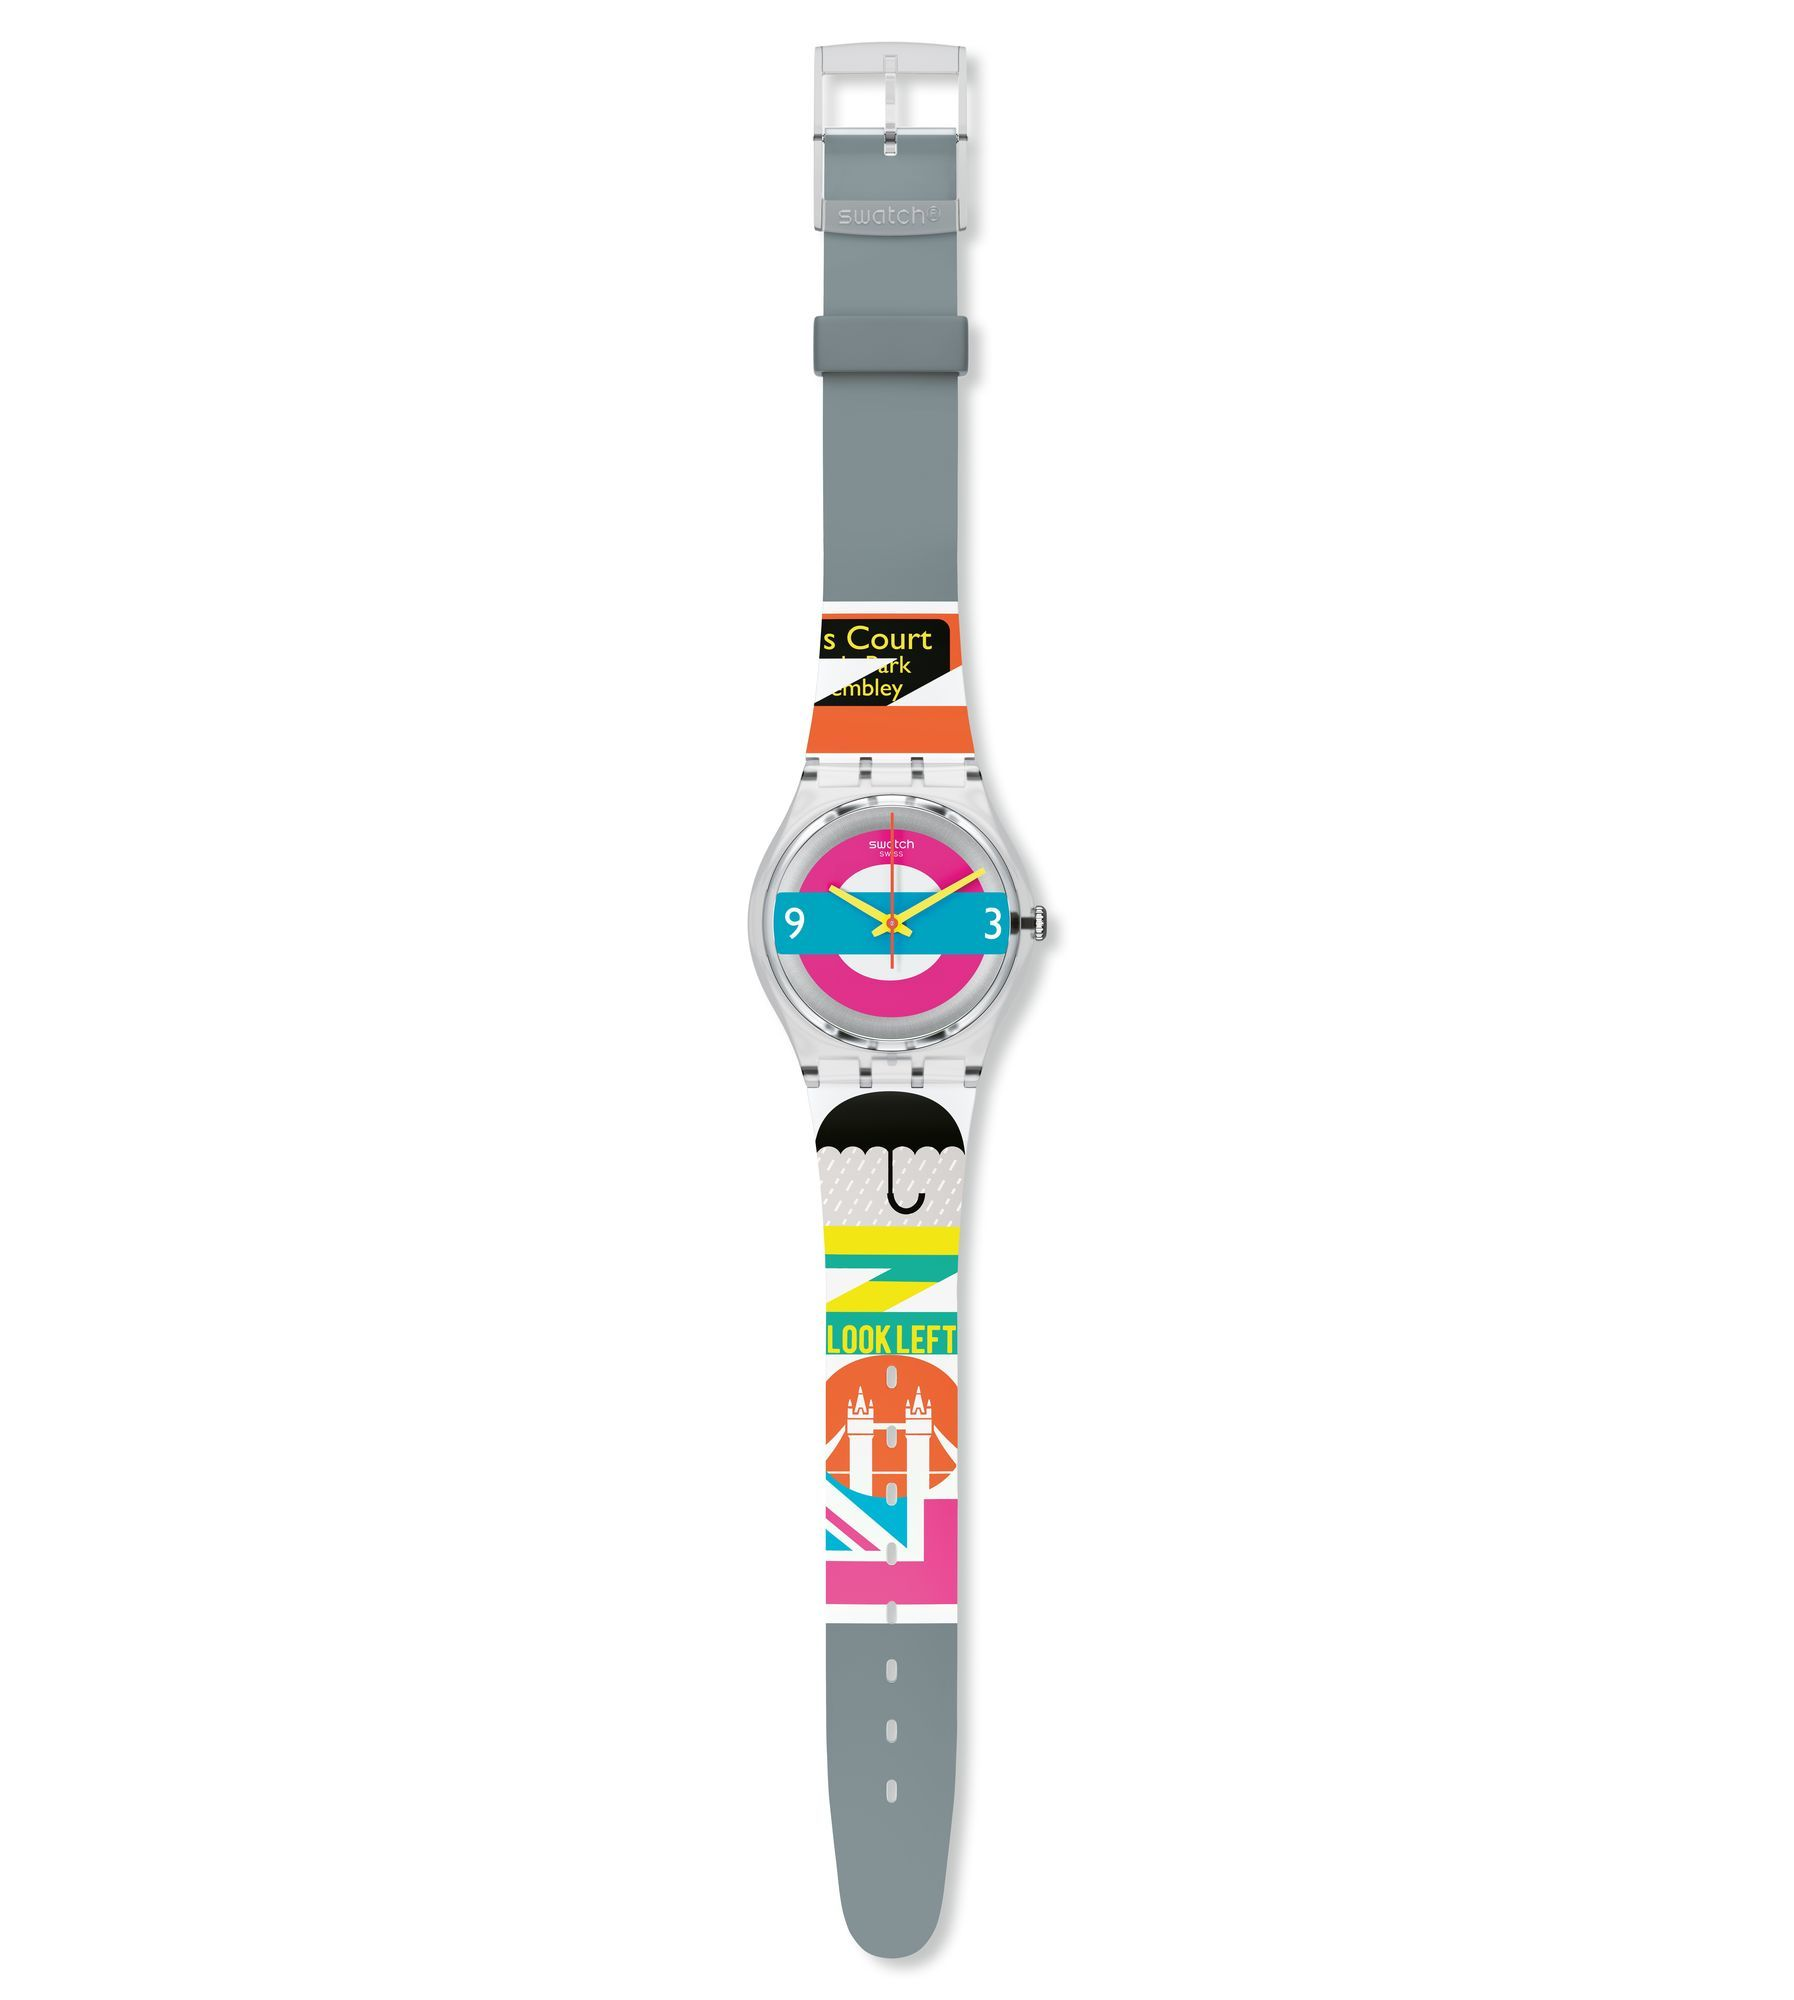 switch com again watches once twodoswatches en brands swatch watch